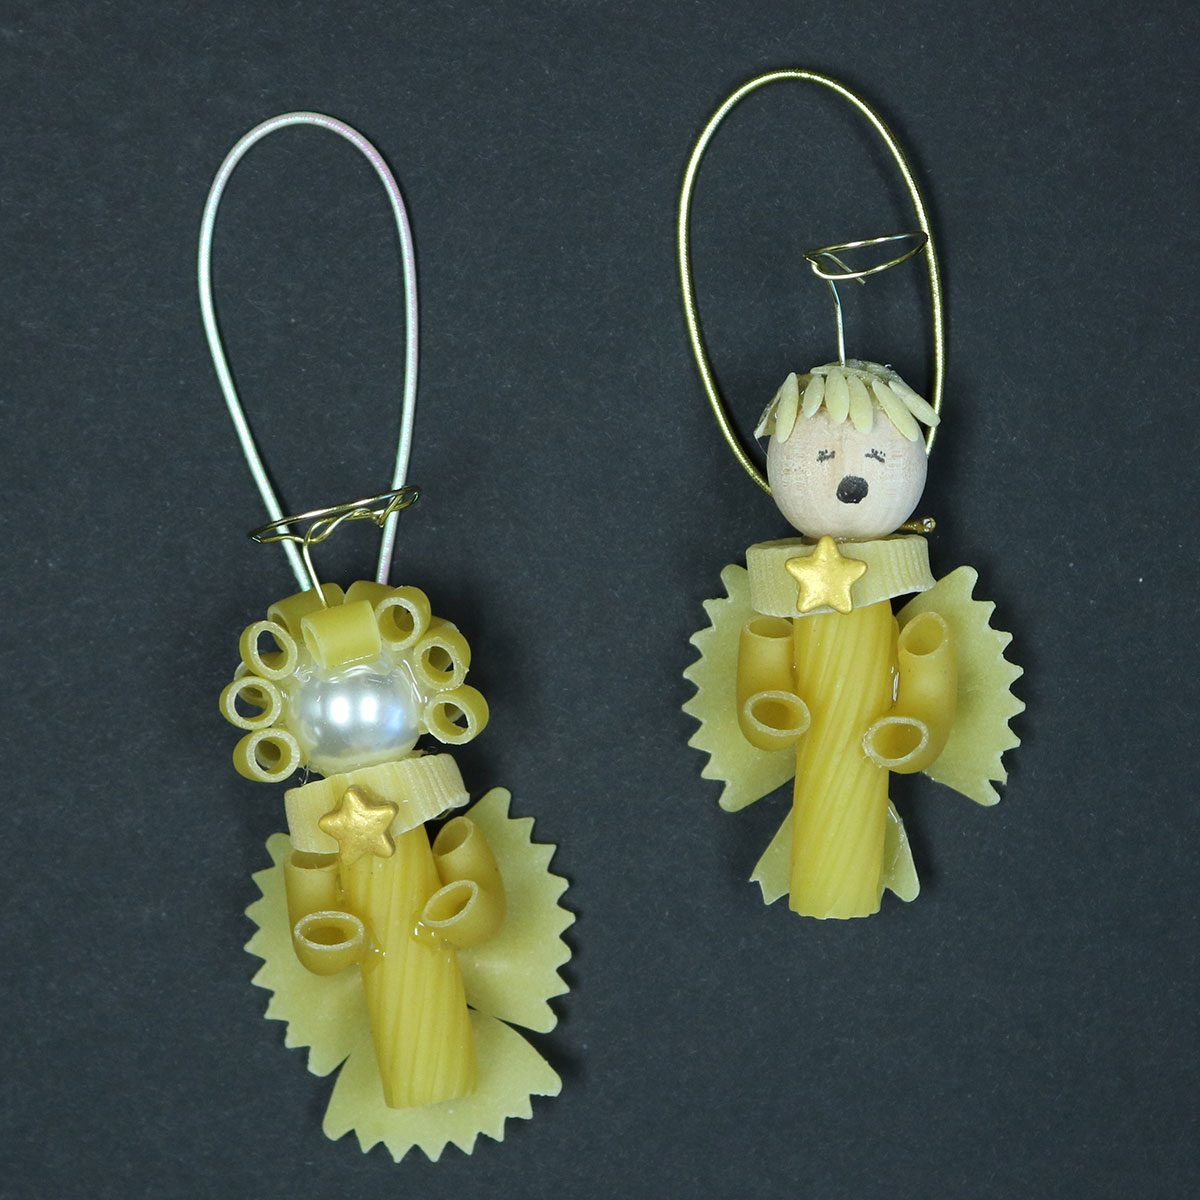 DIY Pasta angels made with wheat pasta, pearls and wire halos ready to hang on a tree.